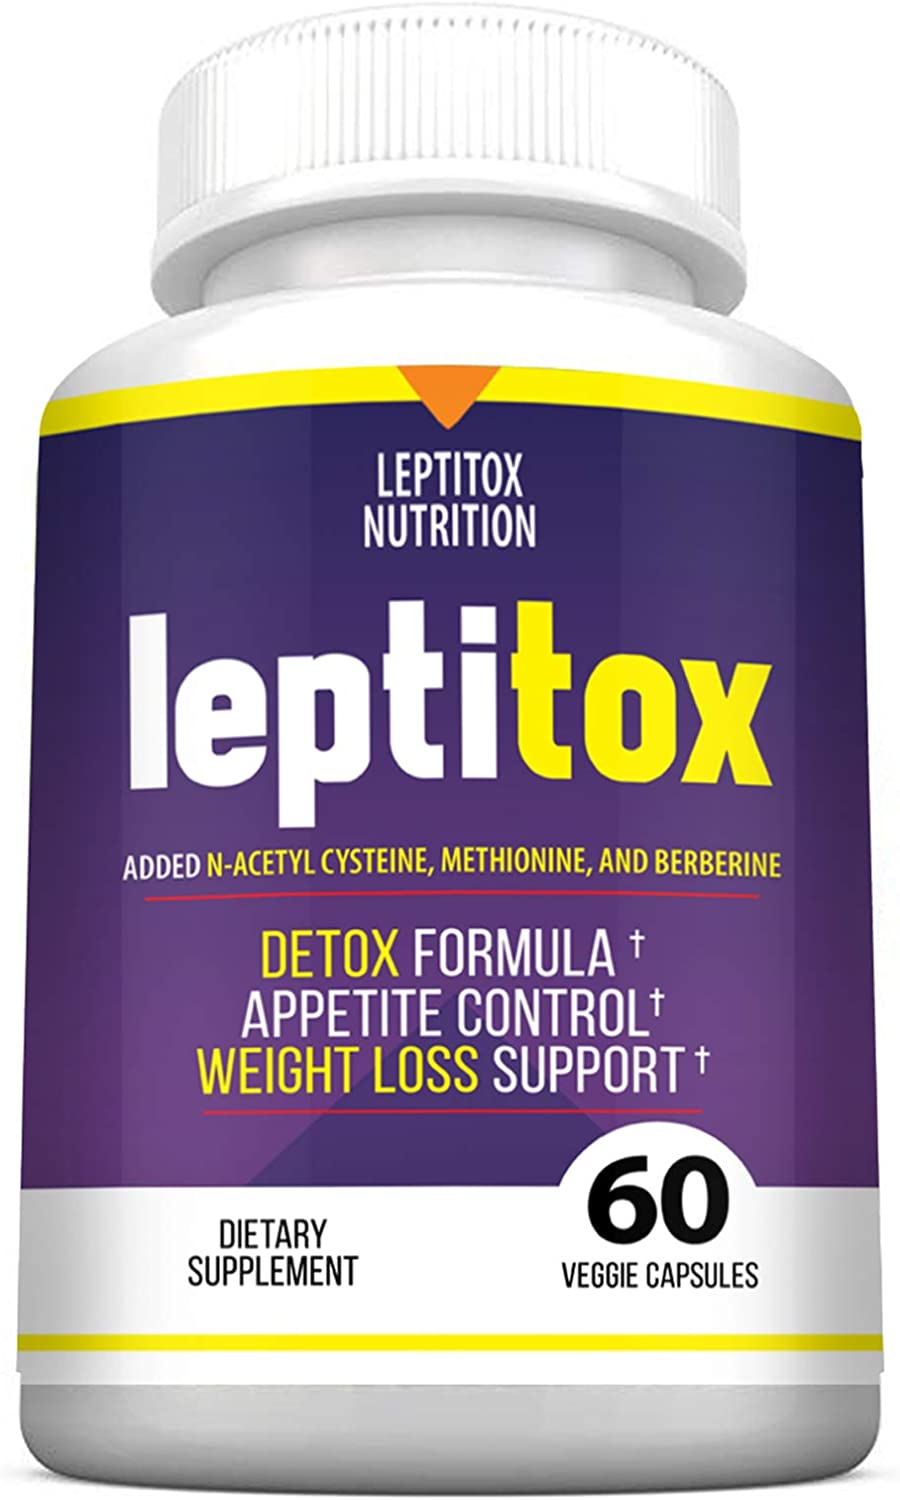 How Much Price Leptitox Weight Loss